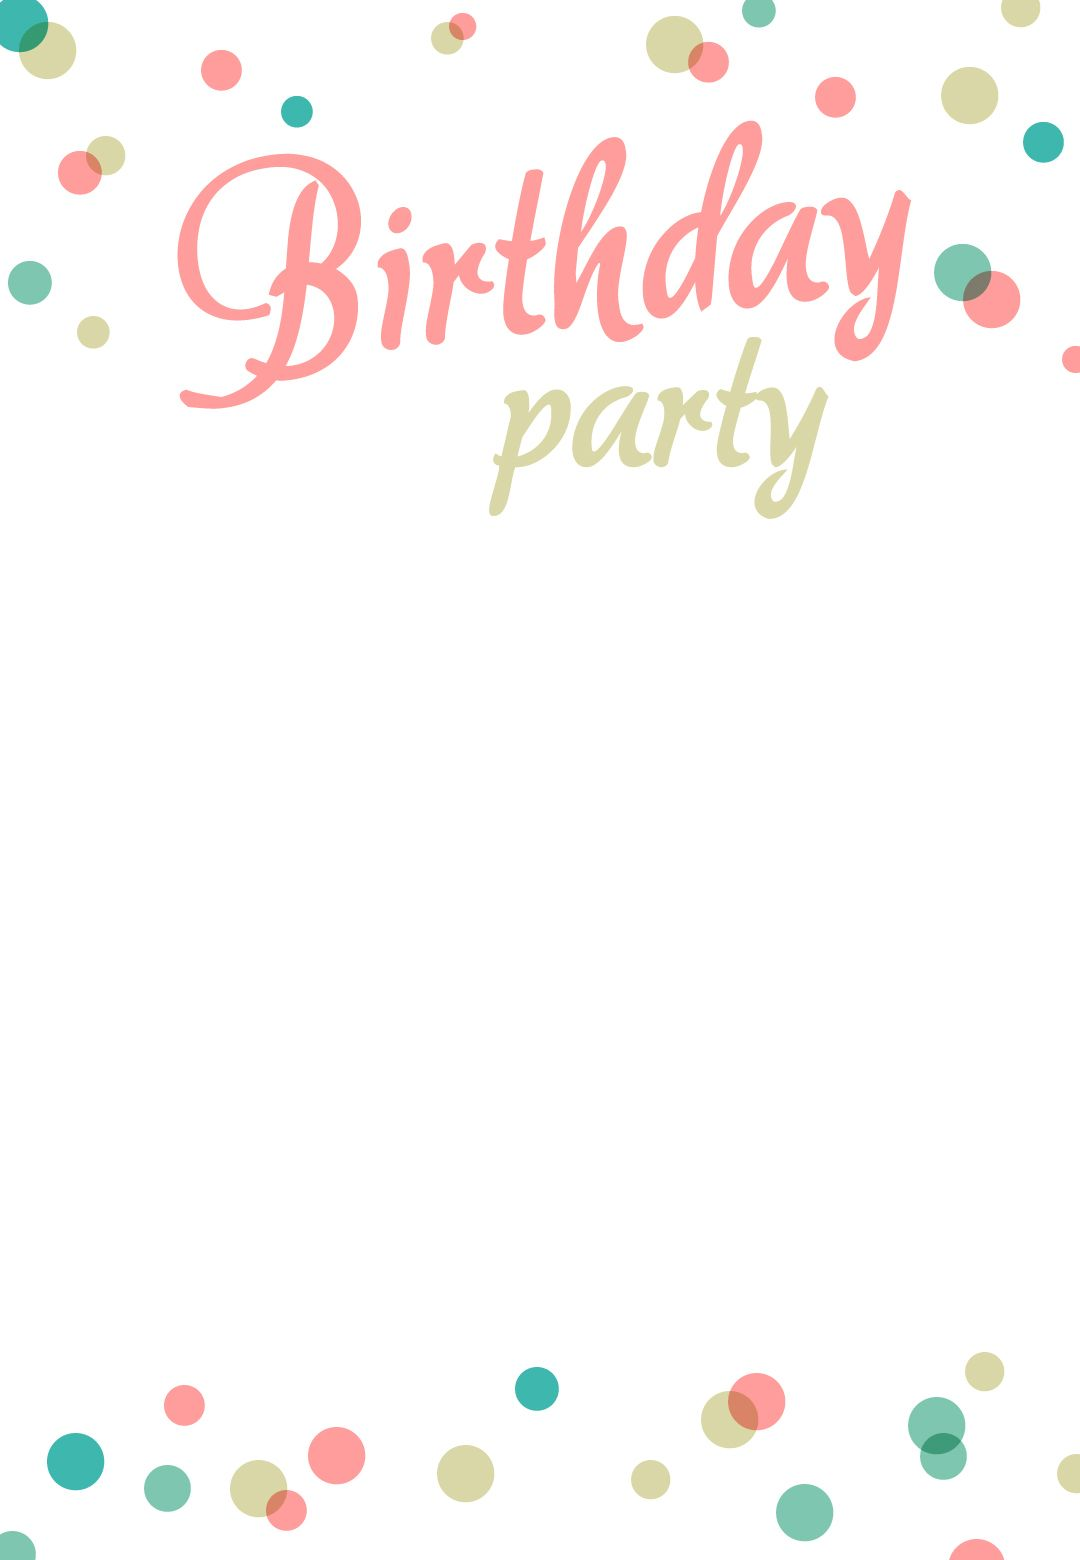 birthday party invitation free printable - Free Birthday Templates